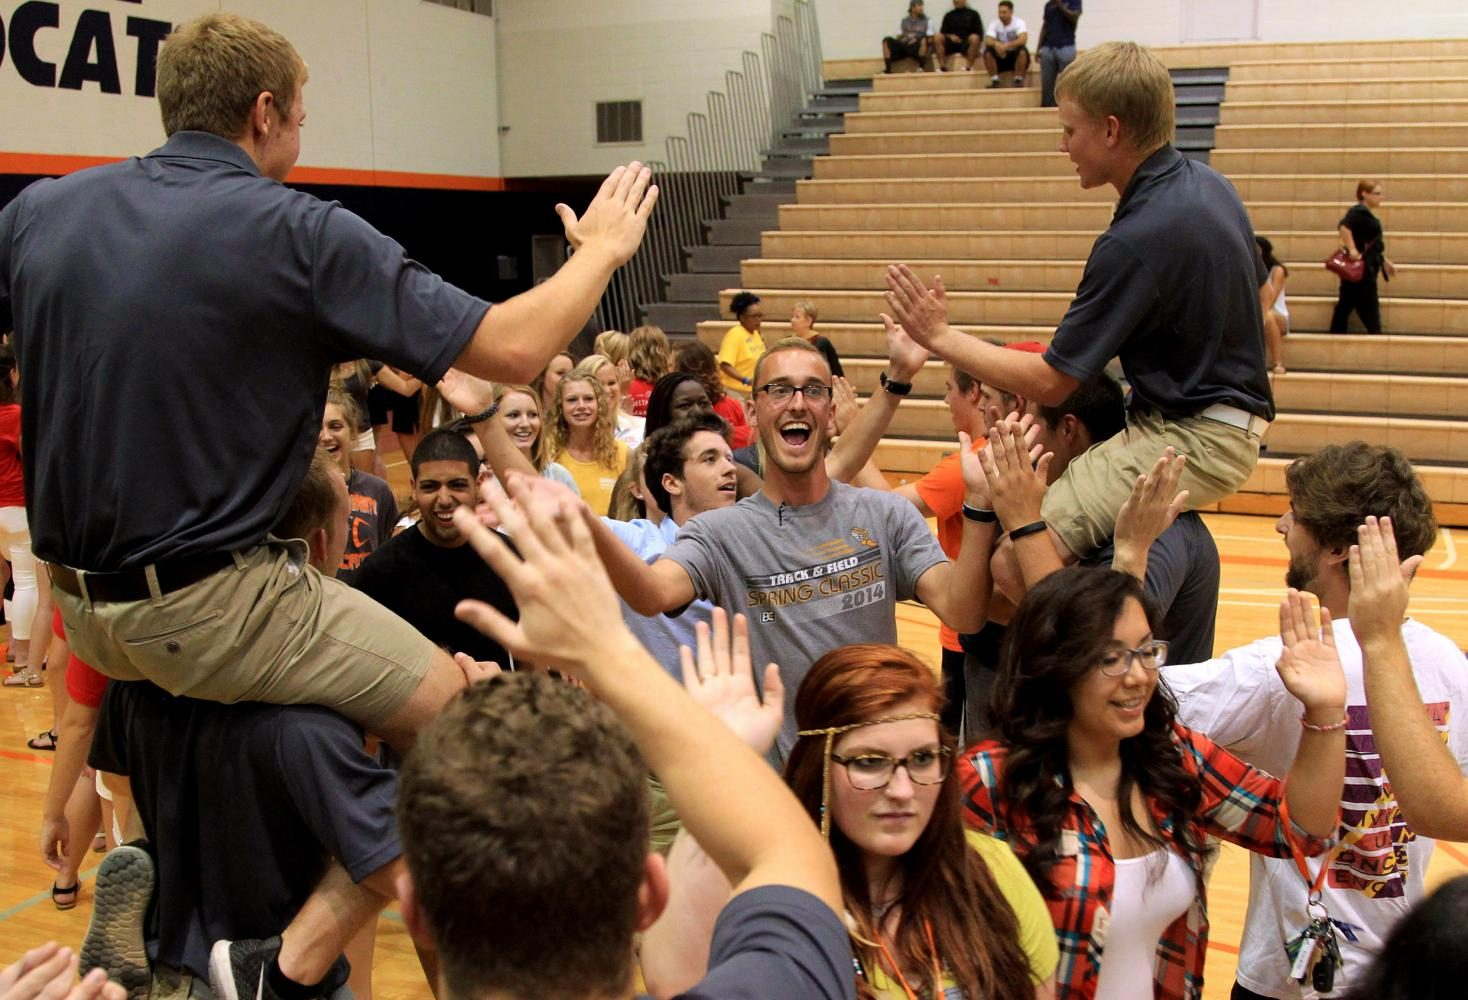 Freshman Cole Stallard walks through a tunnel of current Baker students and claps the hands of Wildcat Welcome Orientation Leaders Michael Riddle and Aaron Brooks prior to Playfair on Aug. 23, 2015, in Collins Center. The start to the school year is always an exciting time for everyone, and I think Cole's reaction captures this excitement perfectly.